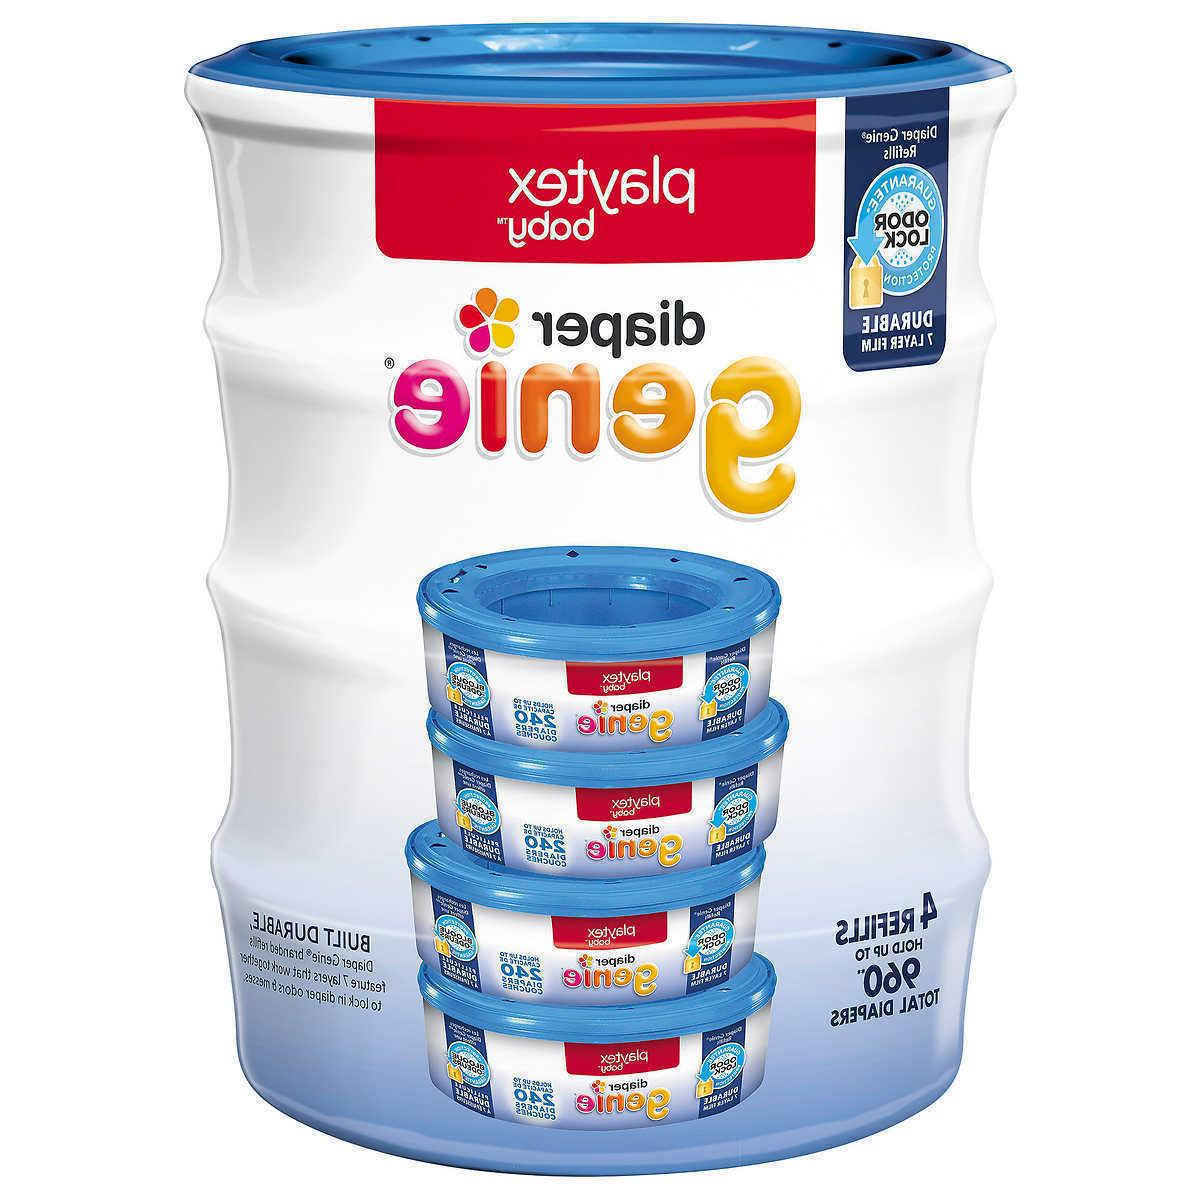 playtex value pack 240x4 960 diapers odor